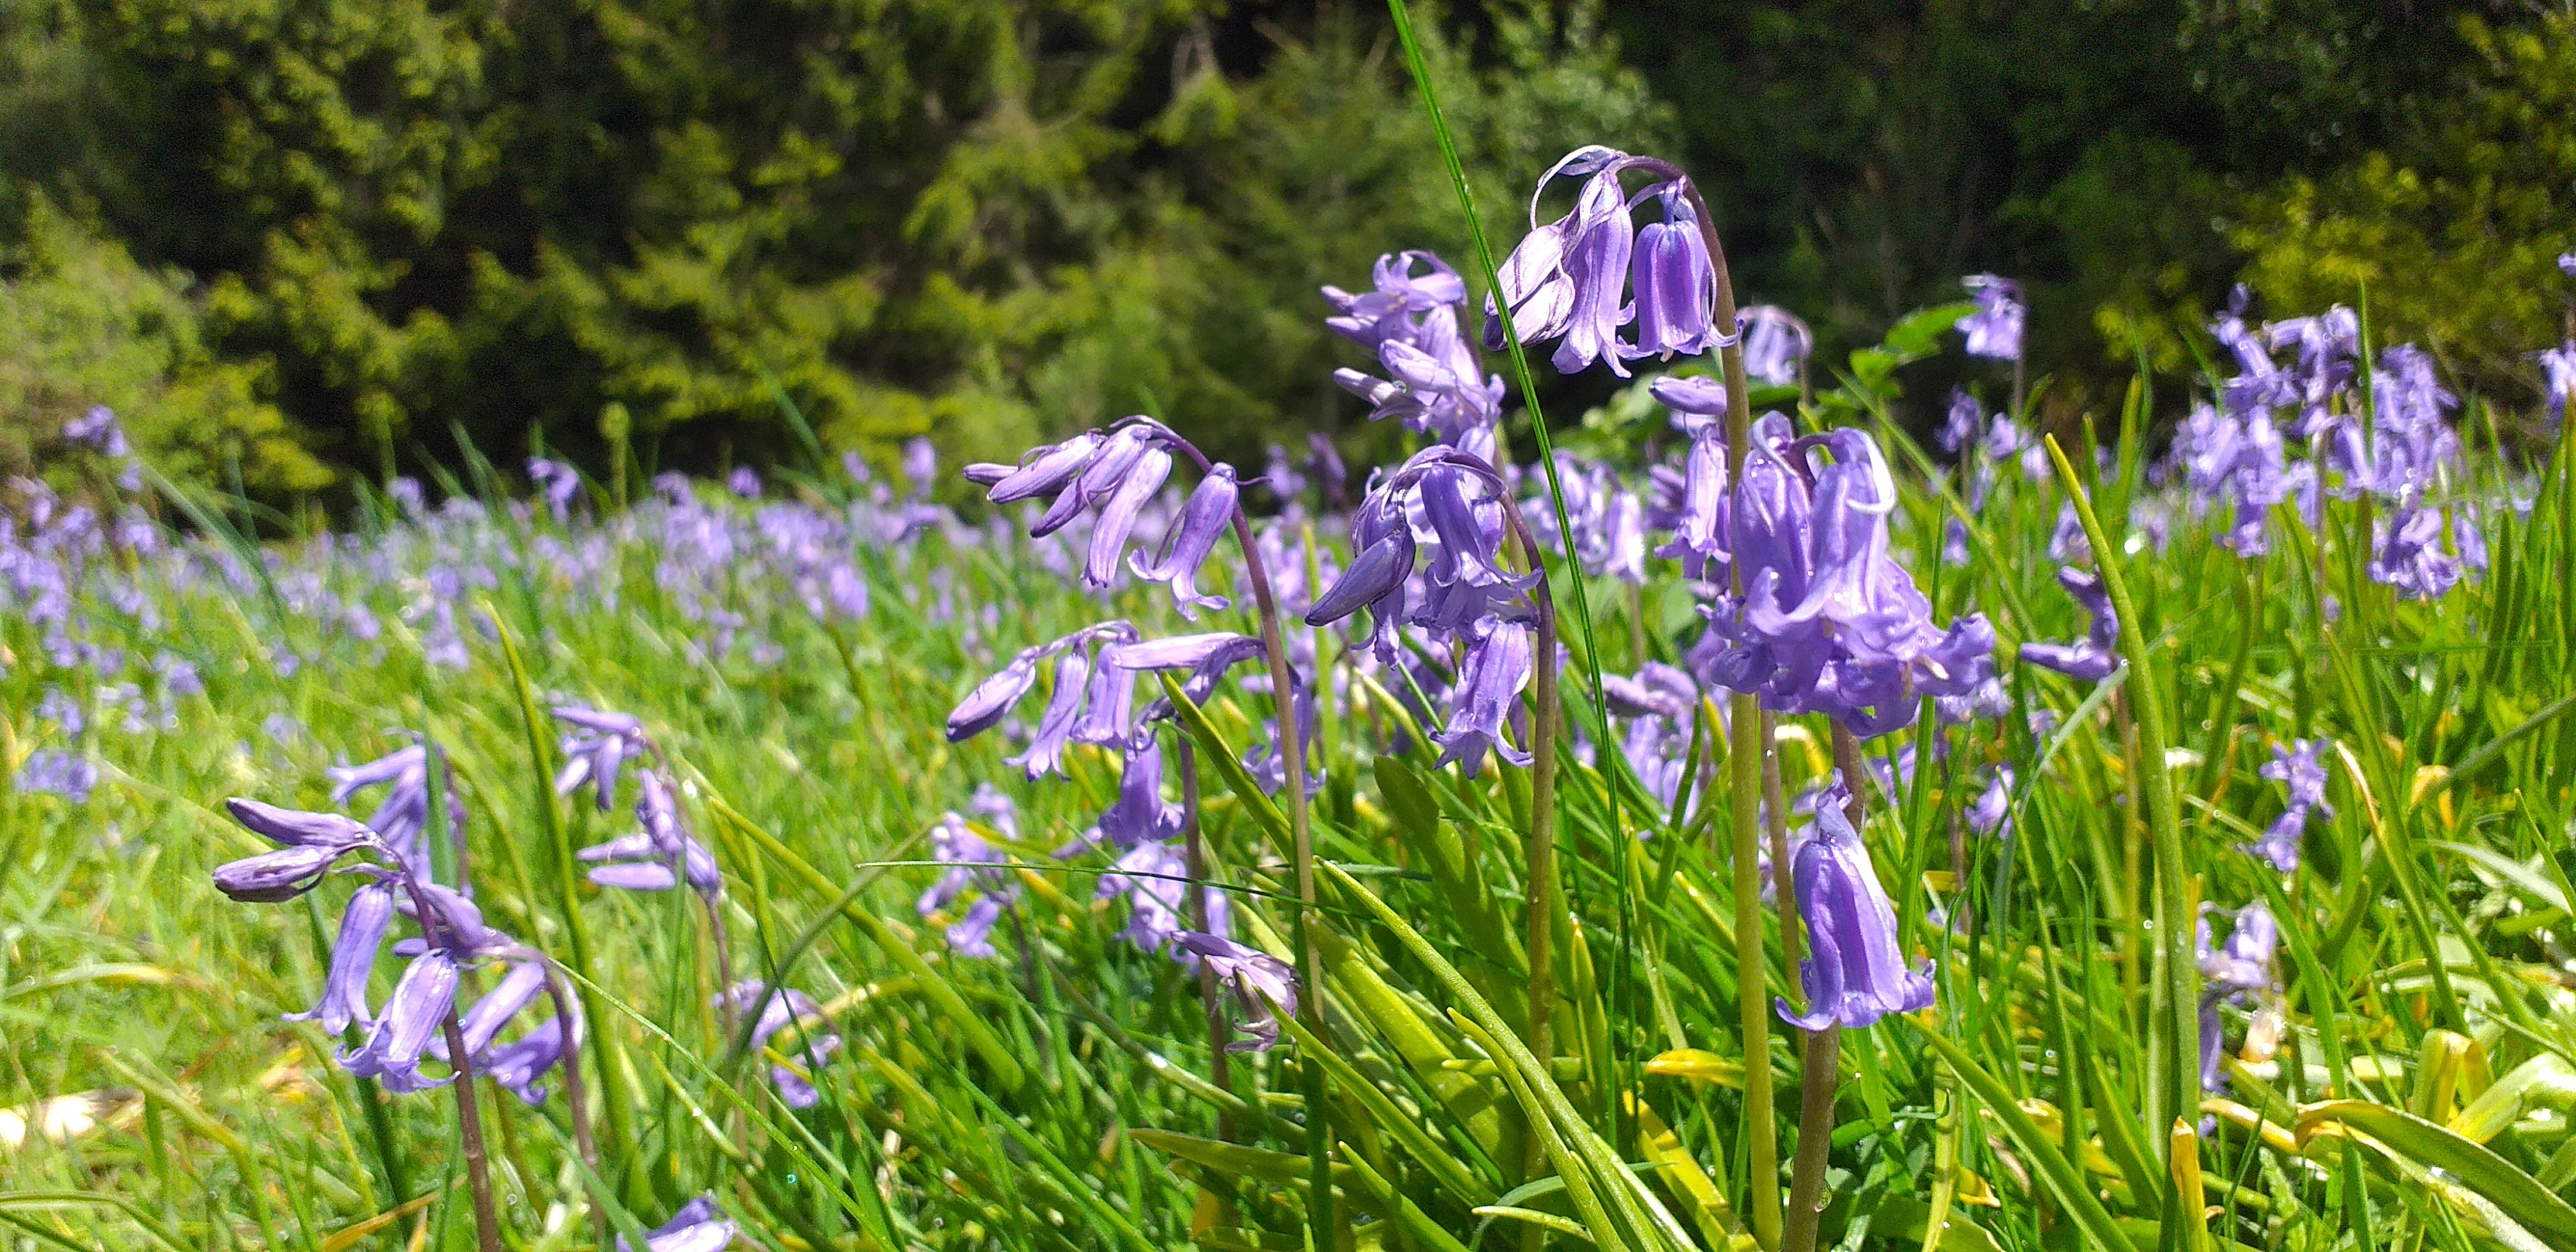 Bluebells in May by Alice Draws the Line